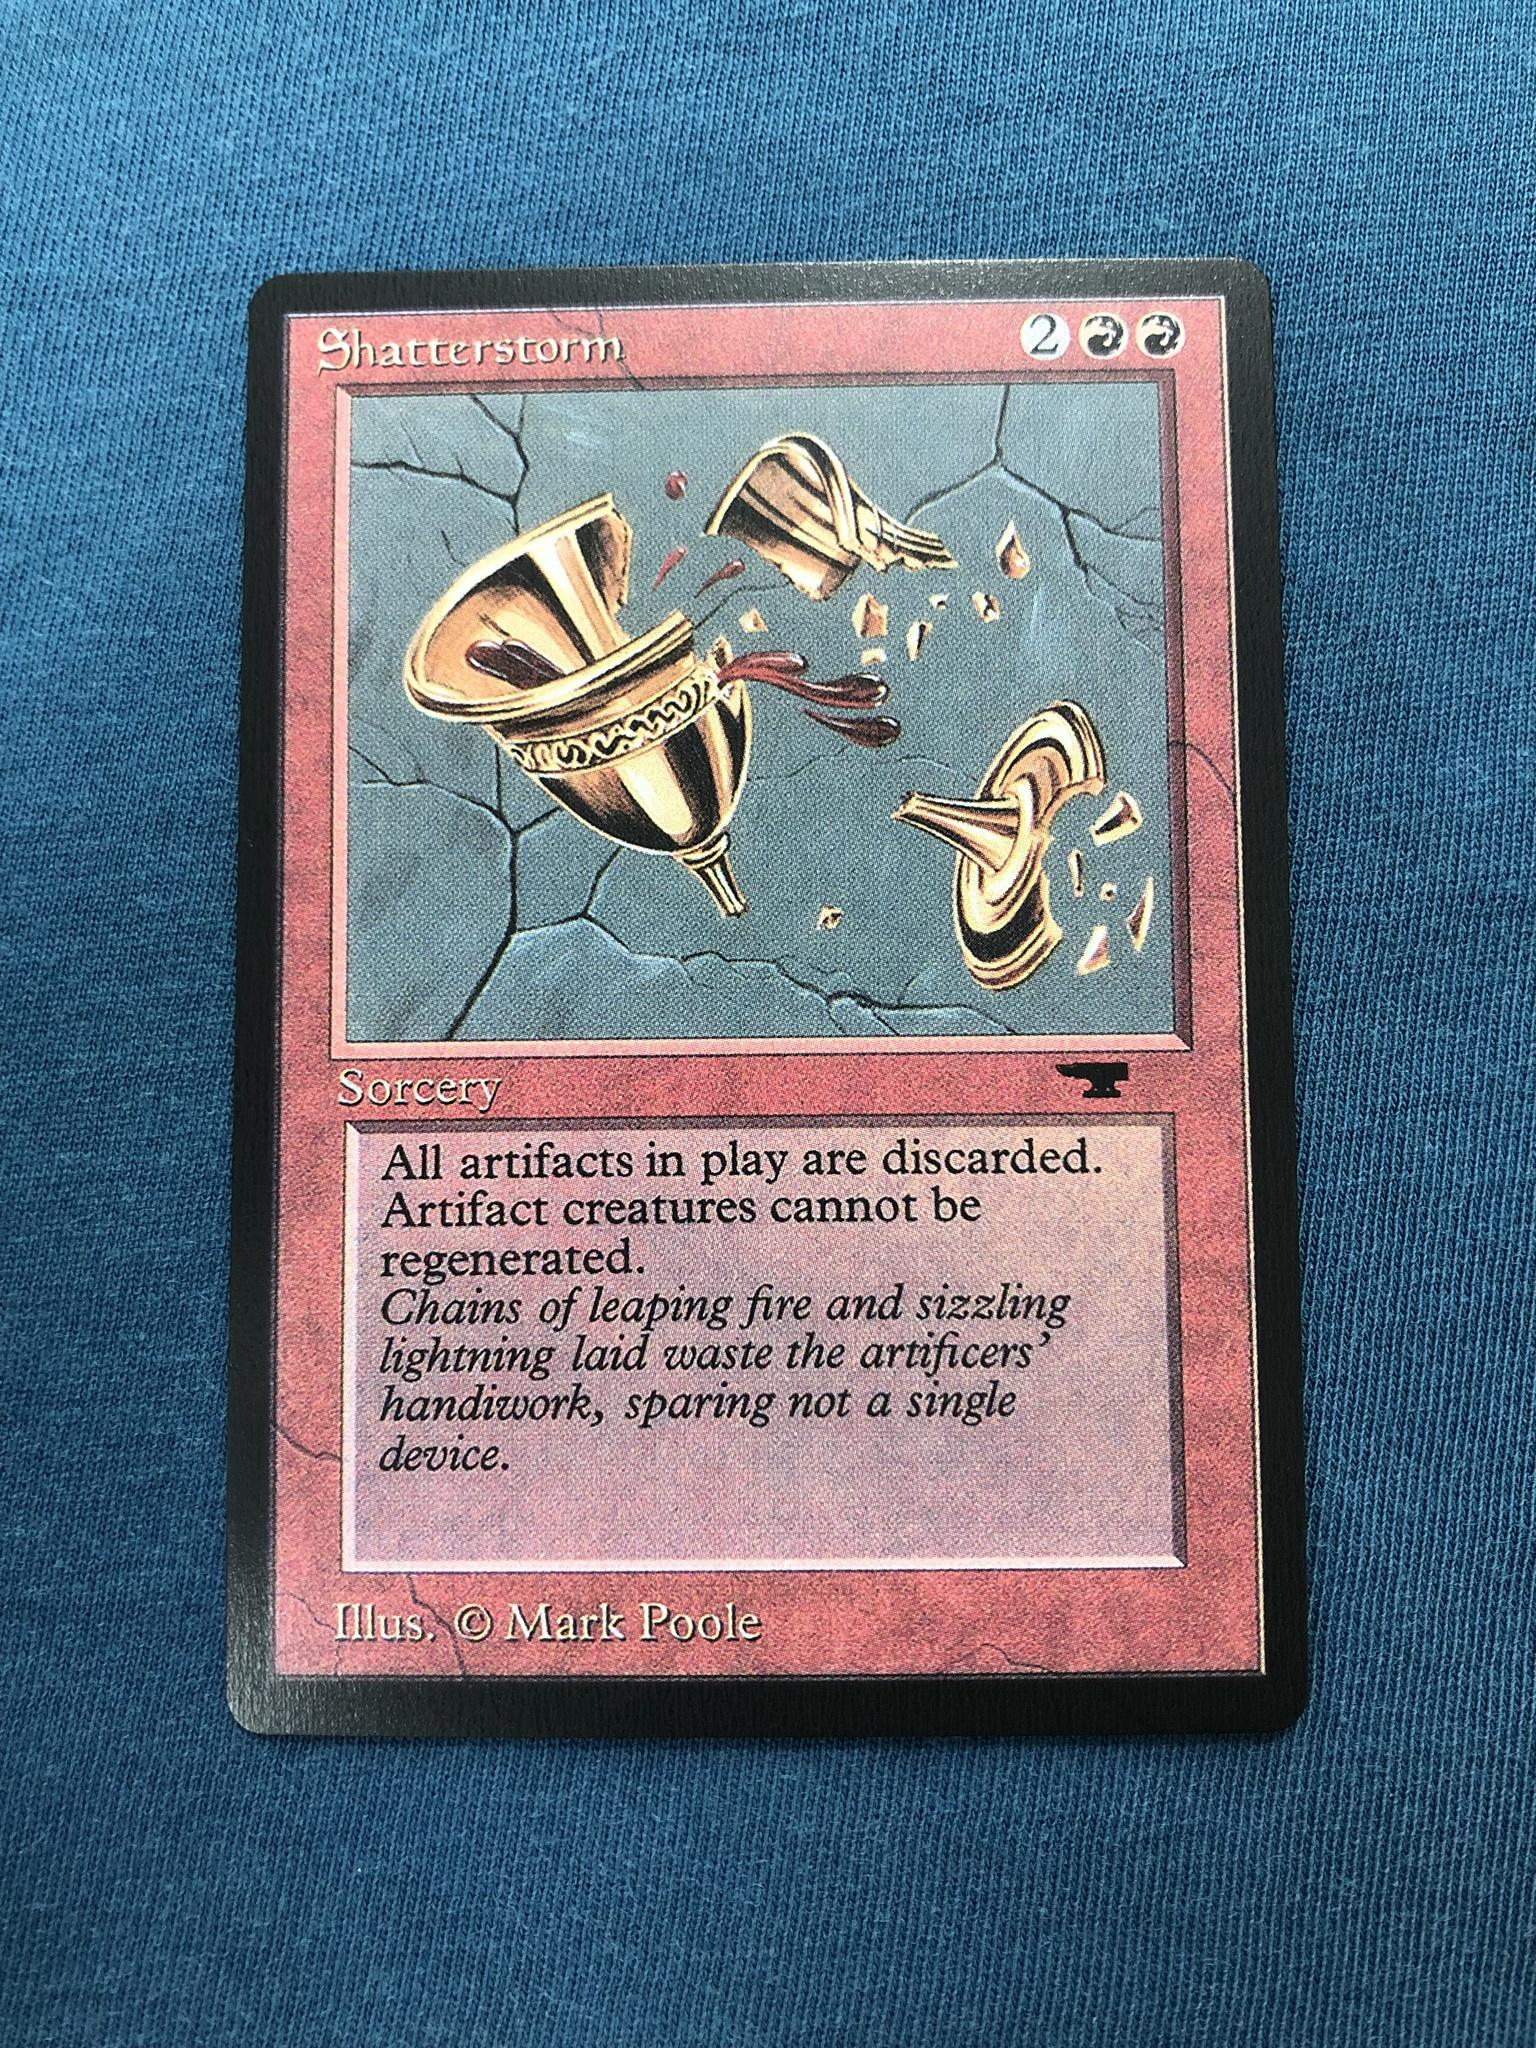 Shatterstorm Antiquities (ATQ) proxy mtg proxies proxy magic the gathering proxies cards FNM GP playable quality